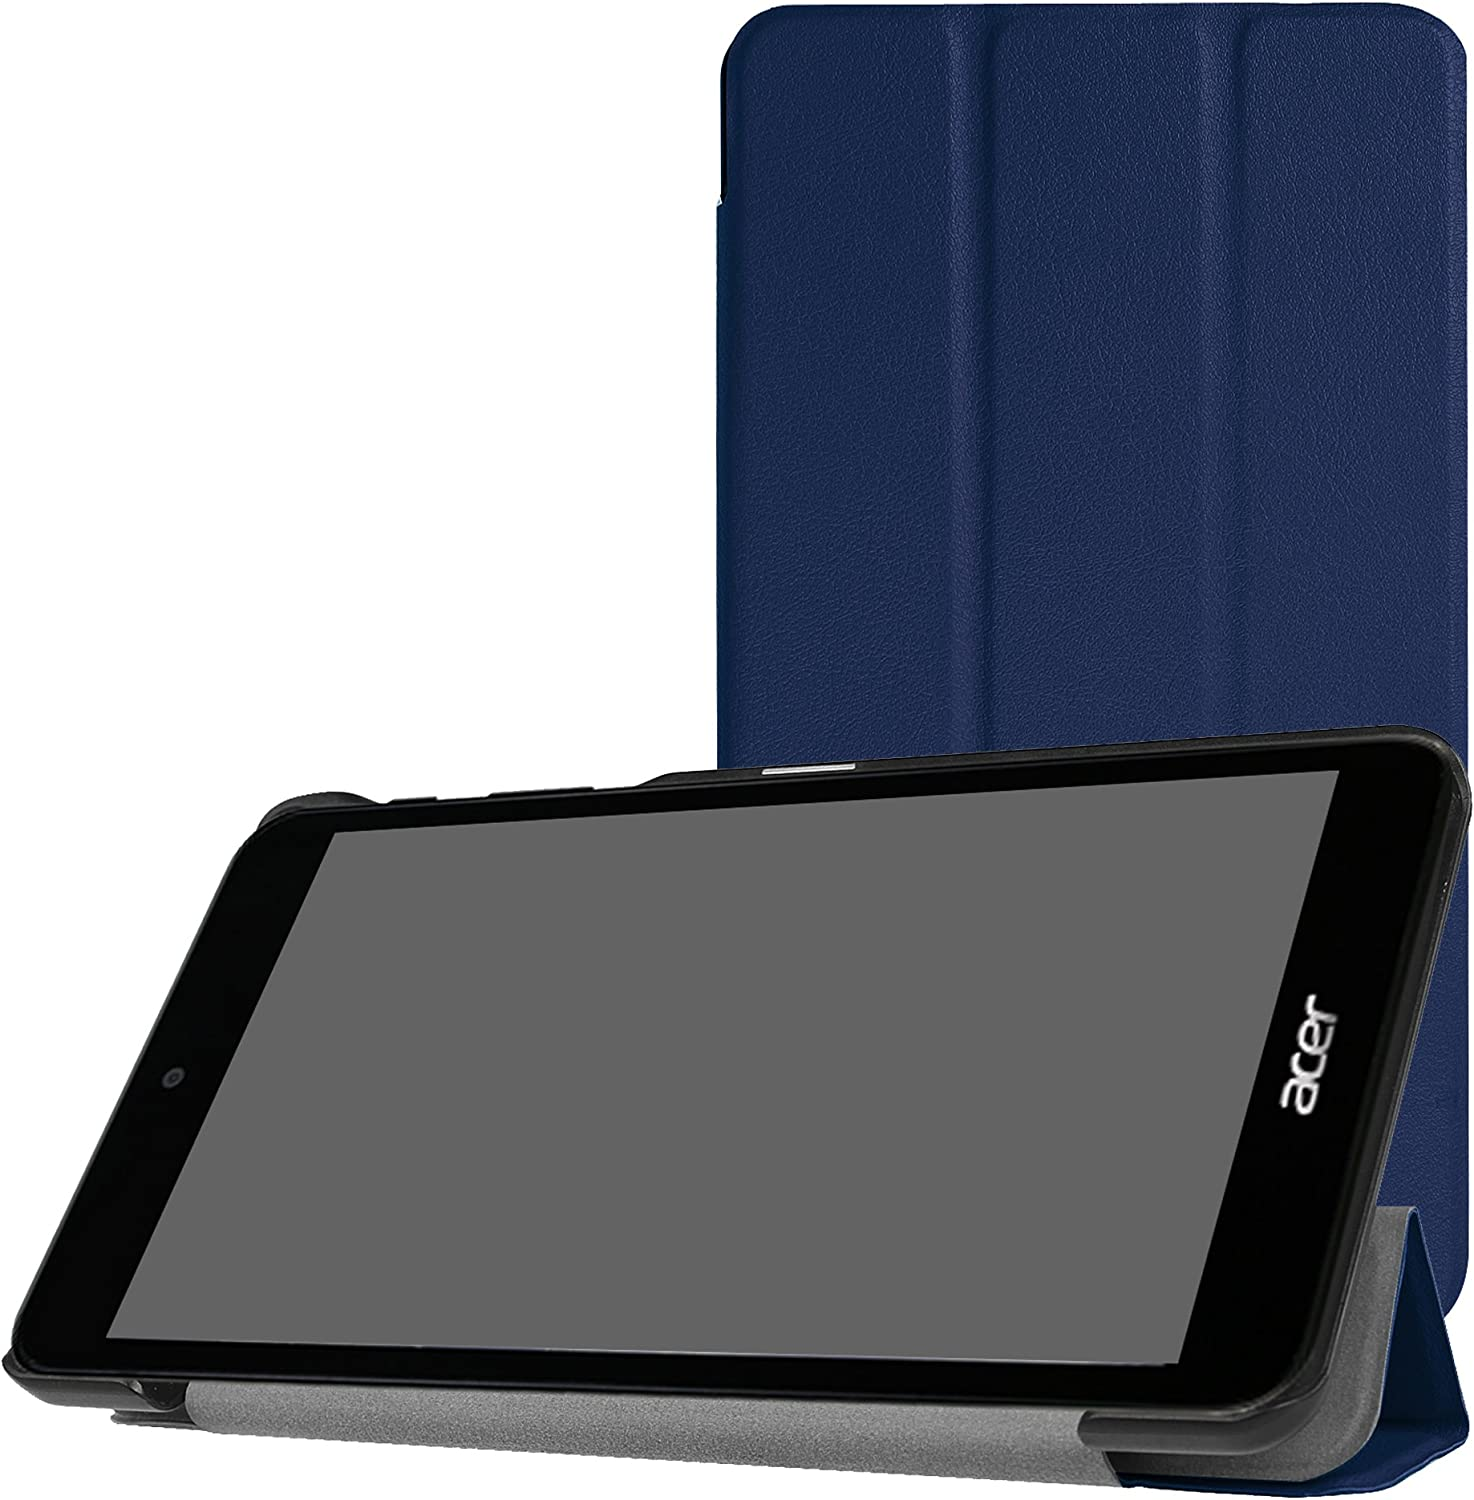 Acer Iconia One 7 B1-790 Slim Shell Case,Mama Mouth Ultra Lightweight PU Leather Standing Cover for Acer Iconia One 7 B1-790 7.0-Inch Tablet [with auto Wake/Sleep Feature],Dark Blue